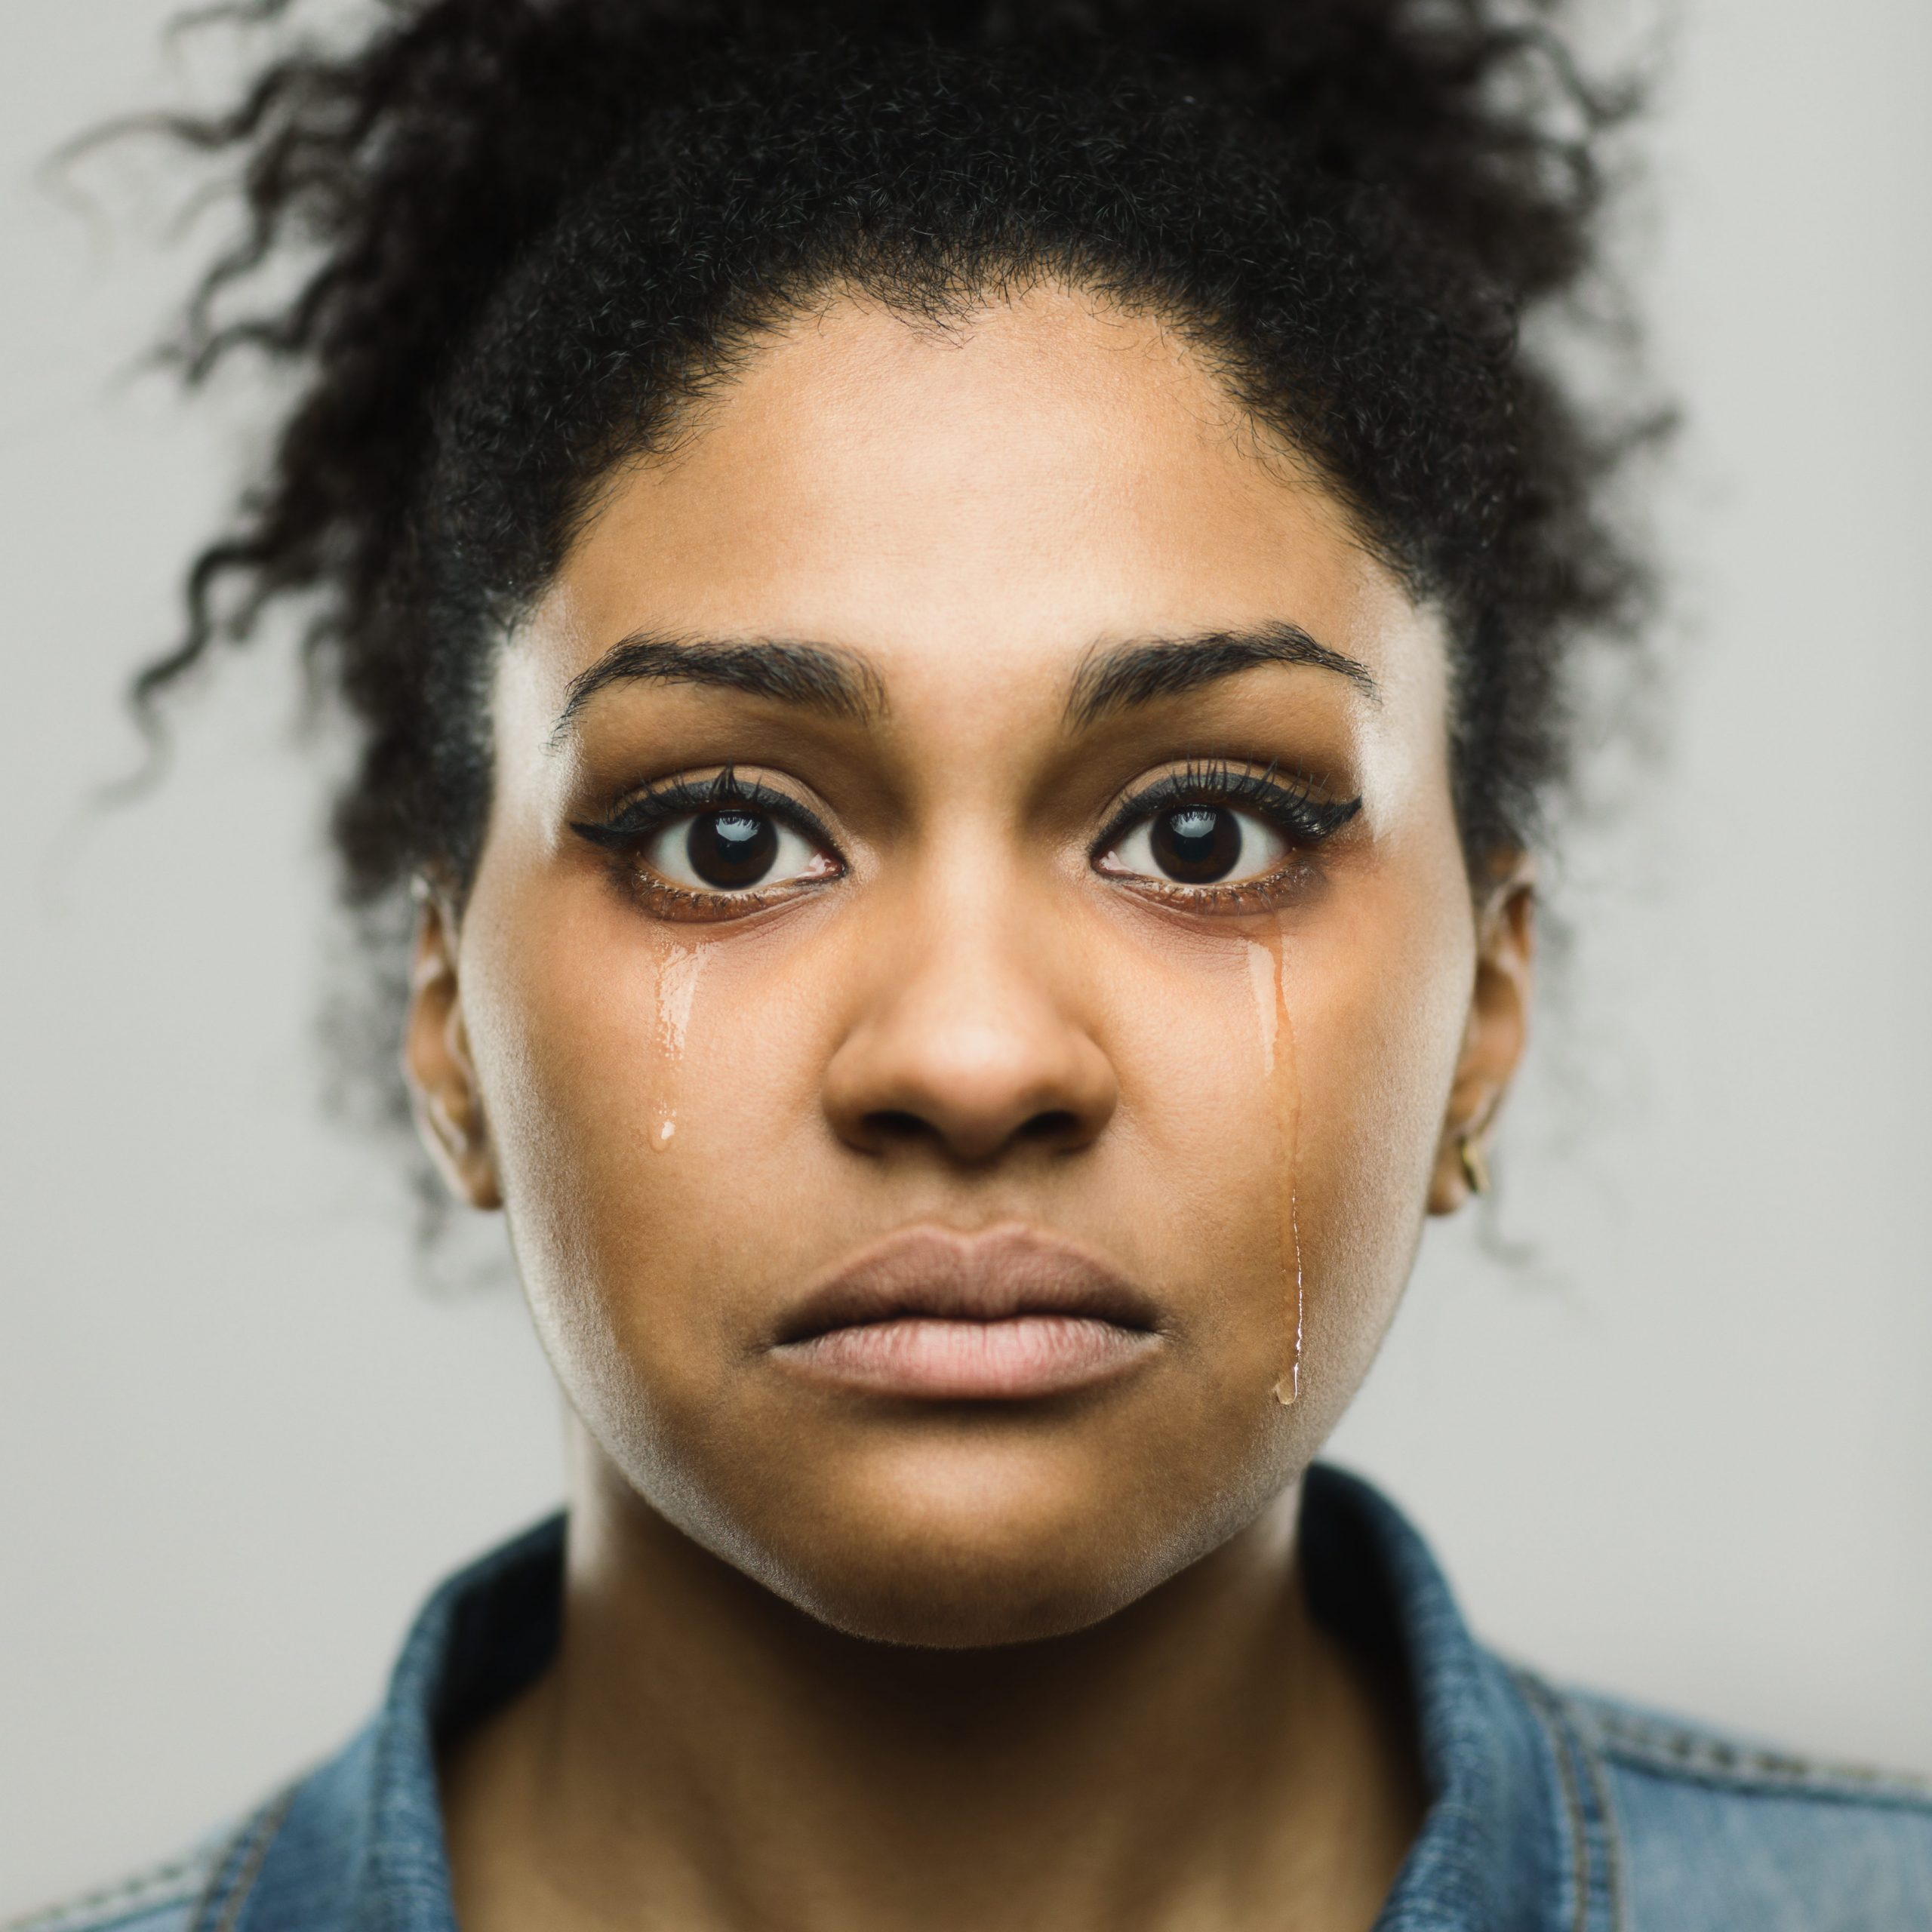 Close-up portrait of sad young afro american woman crying tears